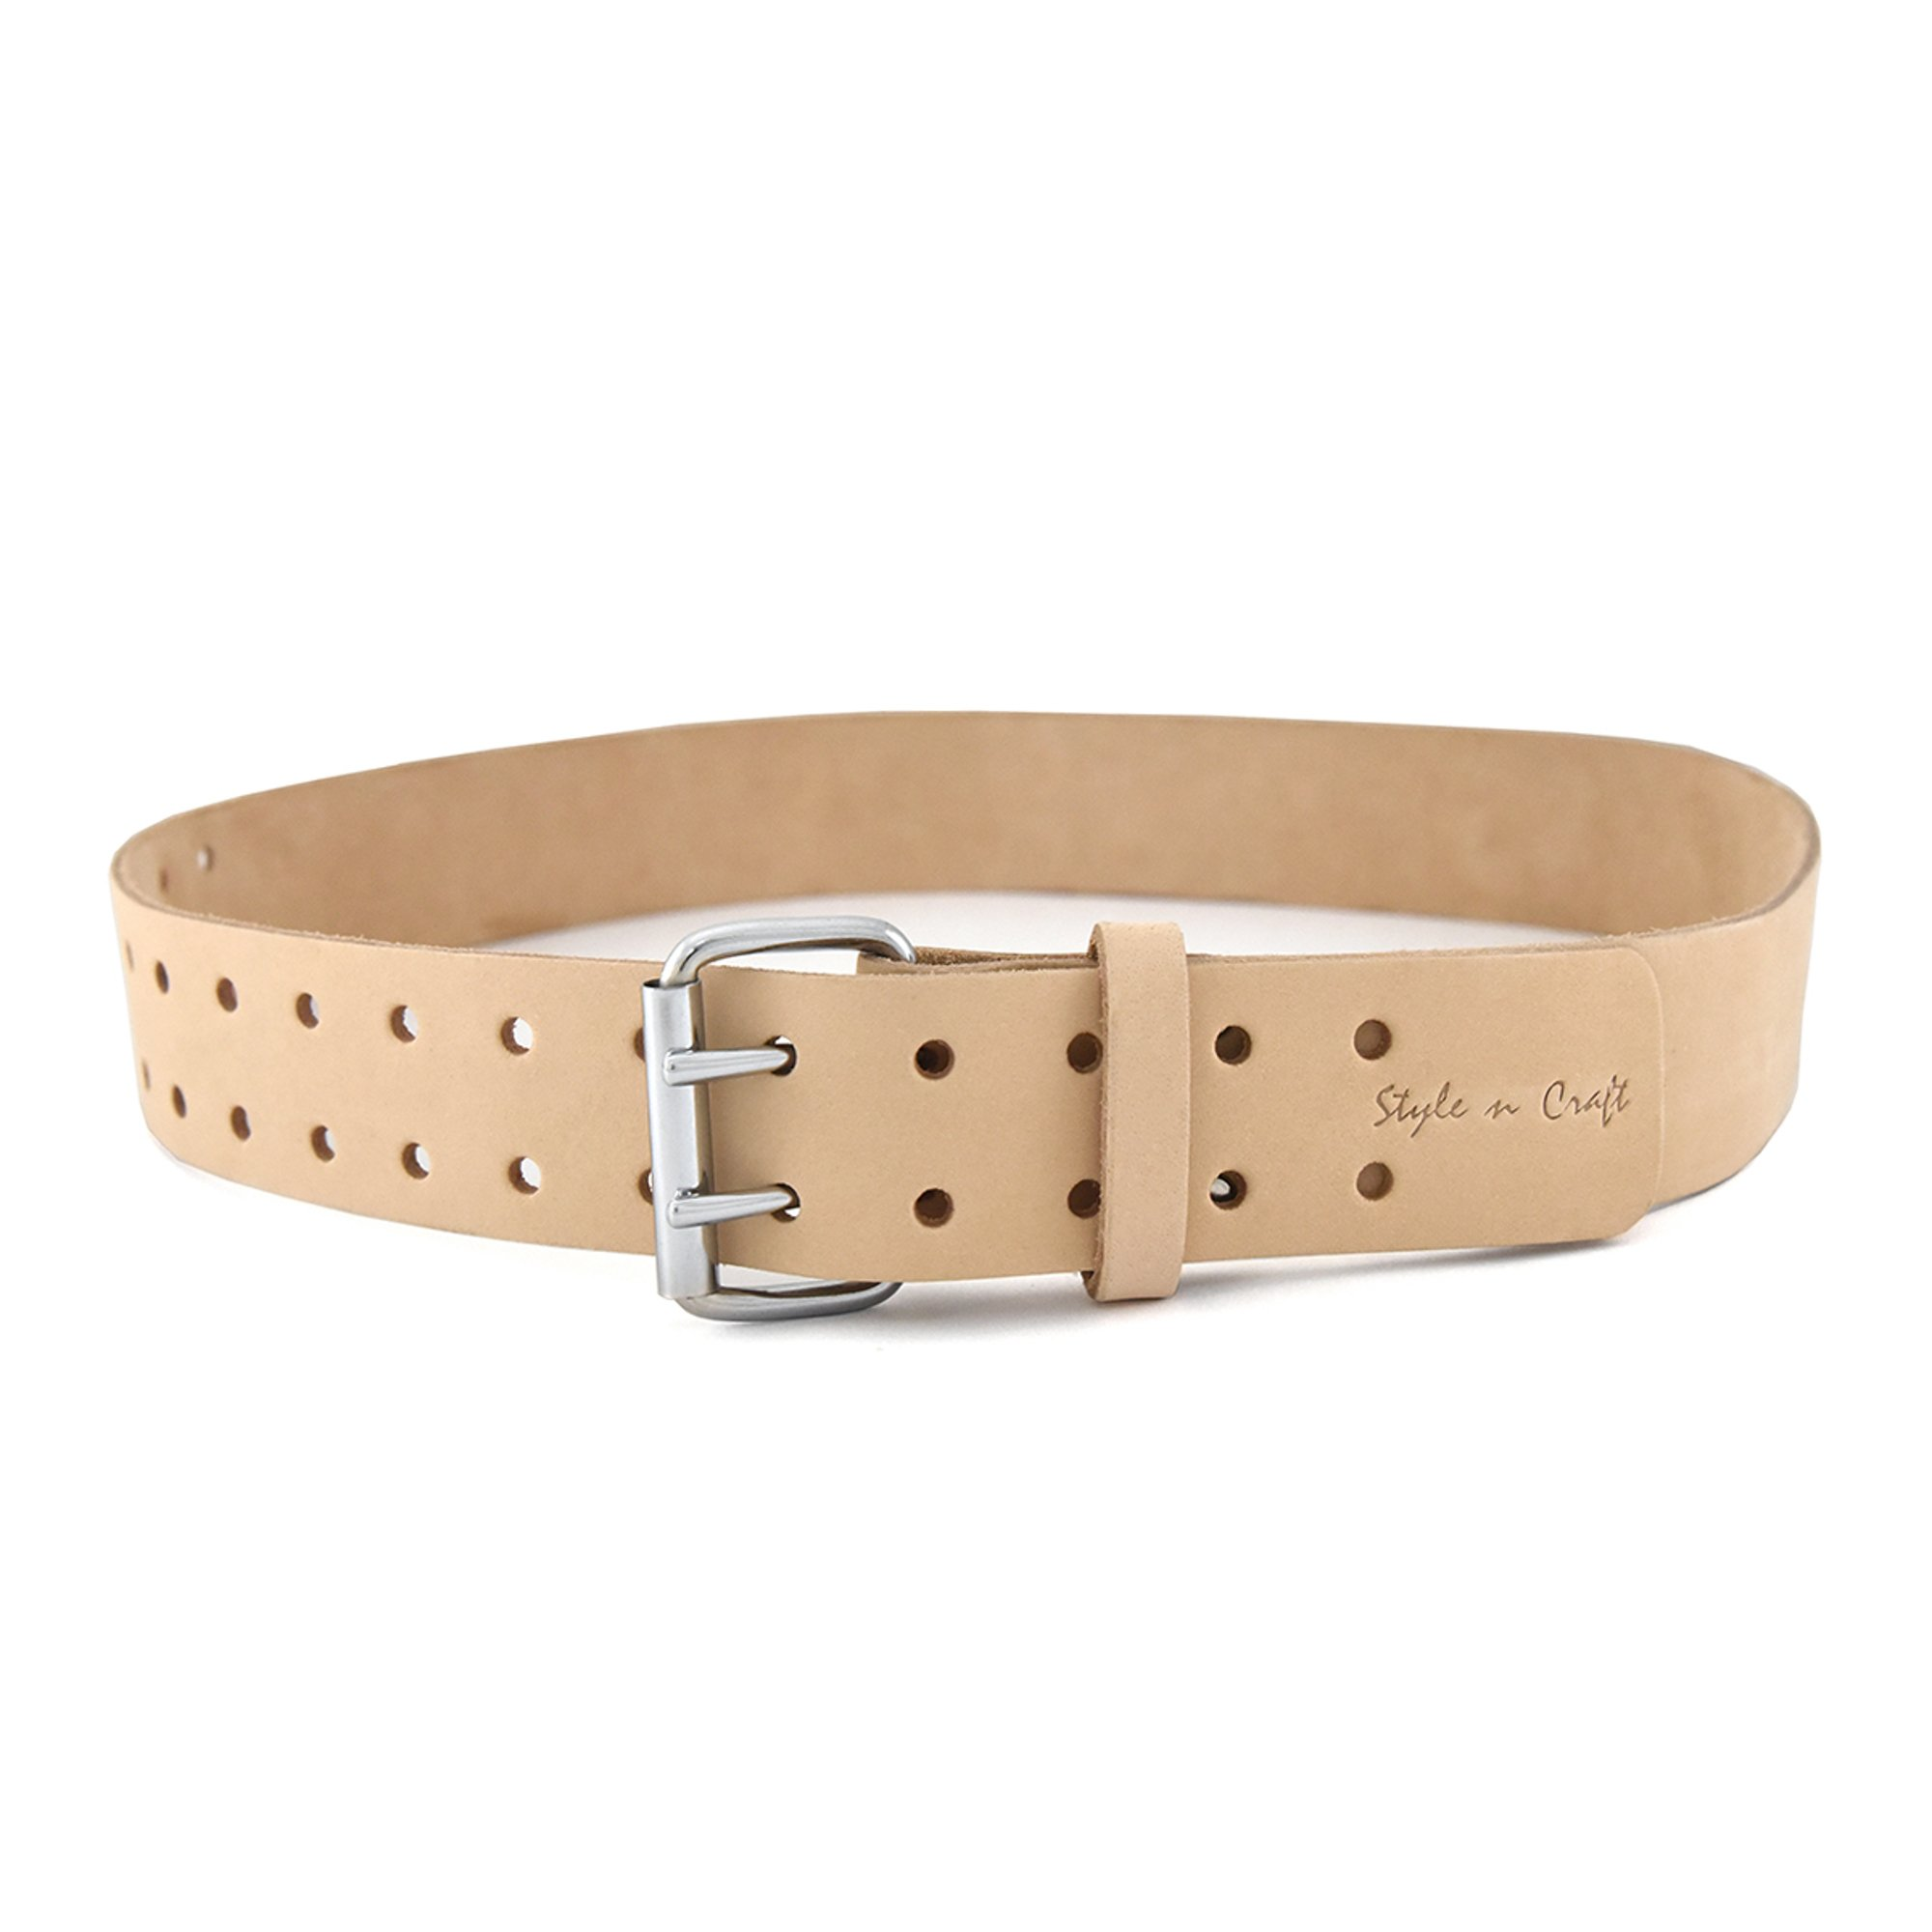 Style n Craft 94-052 2-Inch Wide Work Belt in Heavy Top Grain Leather